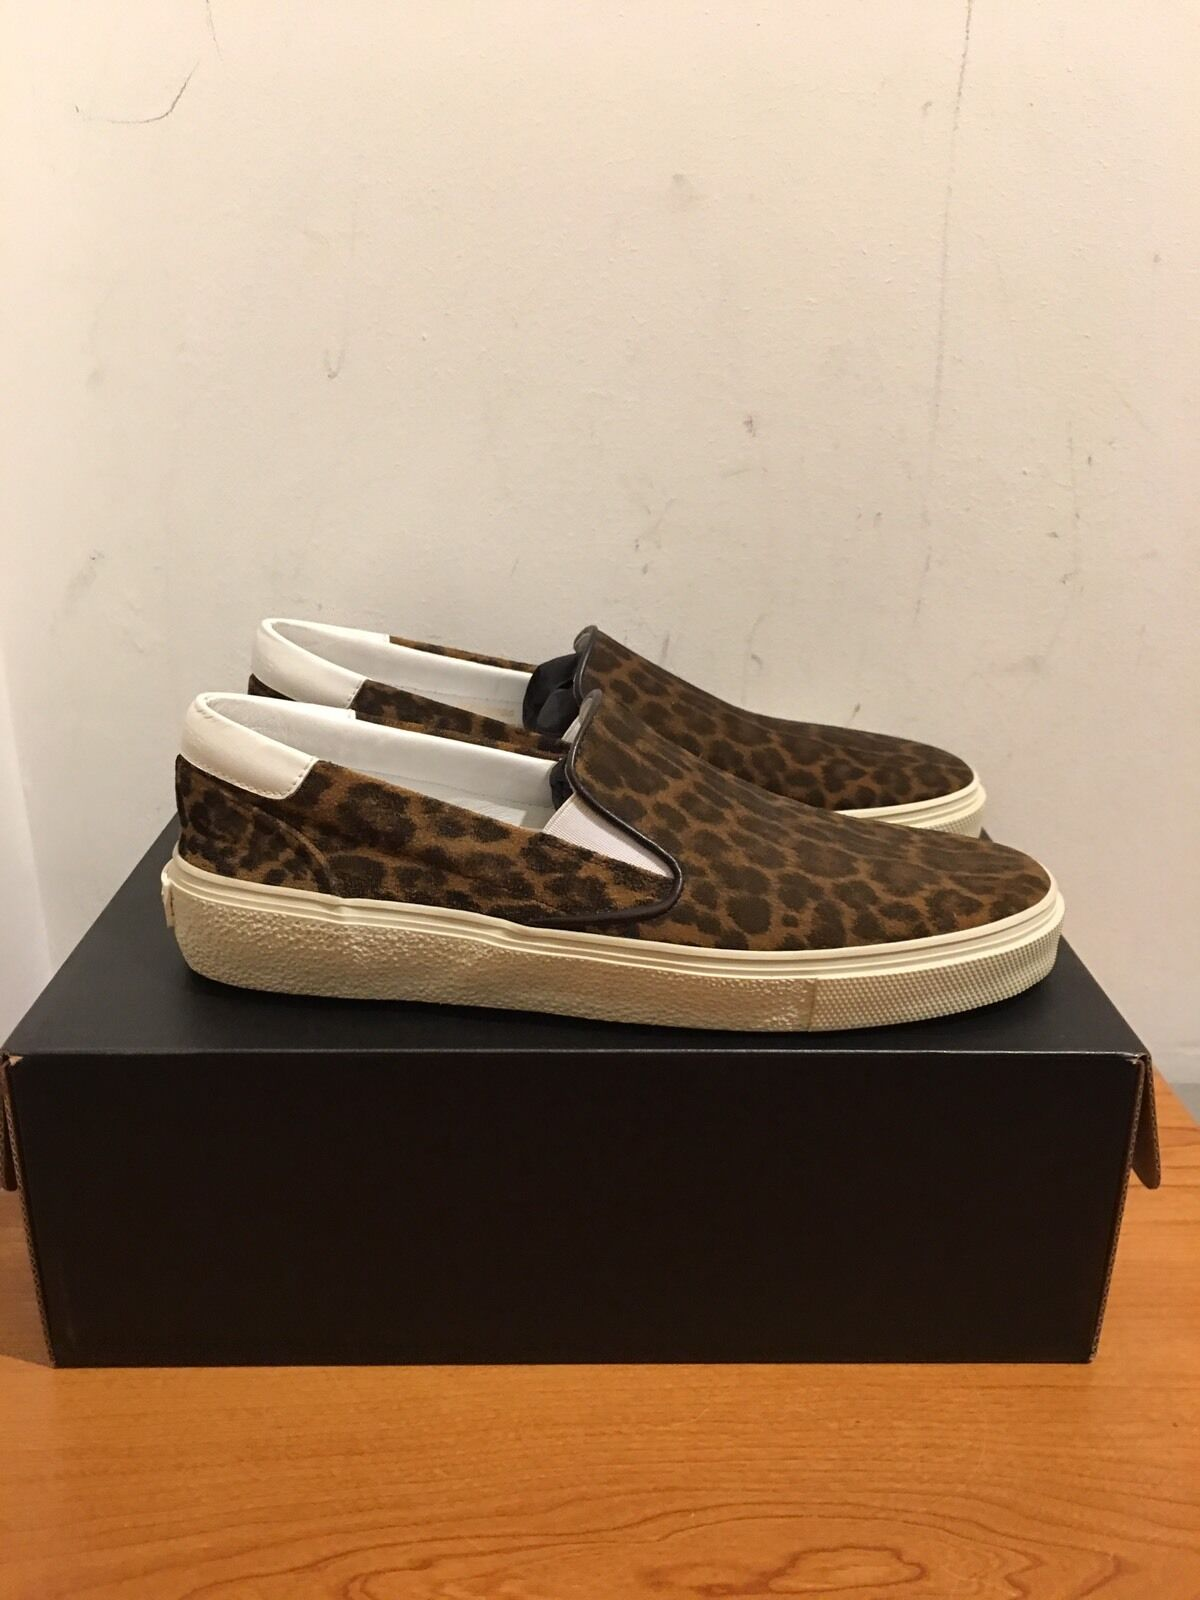 SAINT LAURENT SLIP 7/EU ON SKATE Schuhe UK 7/EU SLIP 40 cc6e4c